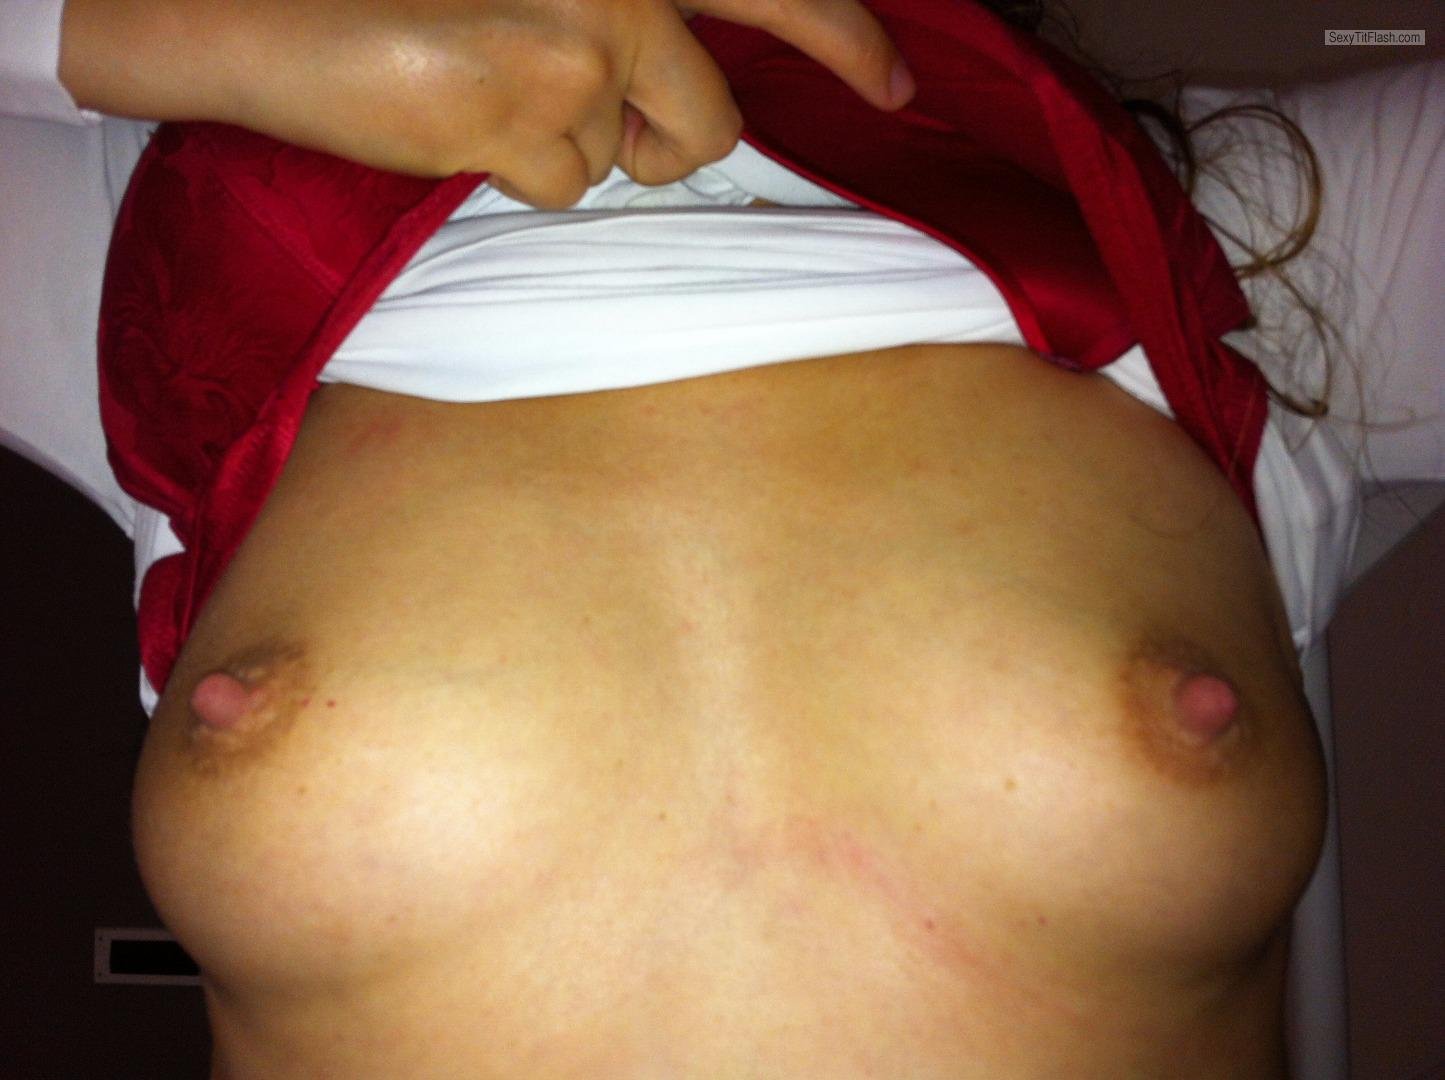 Tit Flash: Wife's Medium Tits (Selfie) - Lien from Netherlands